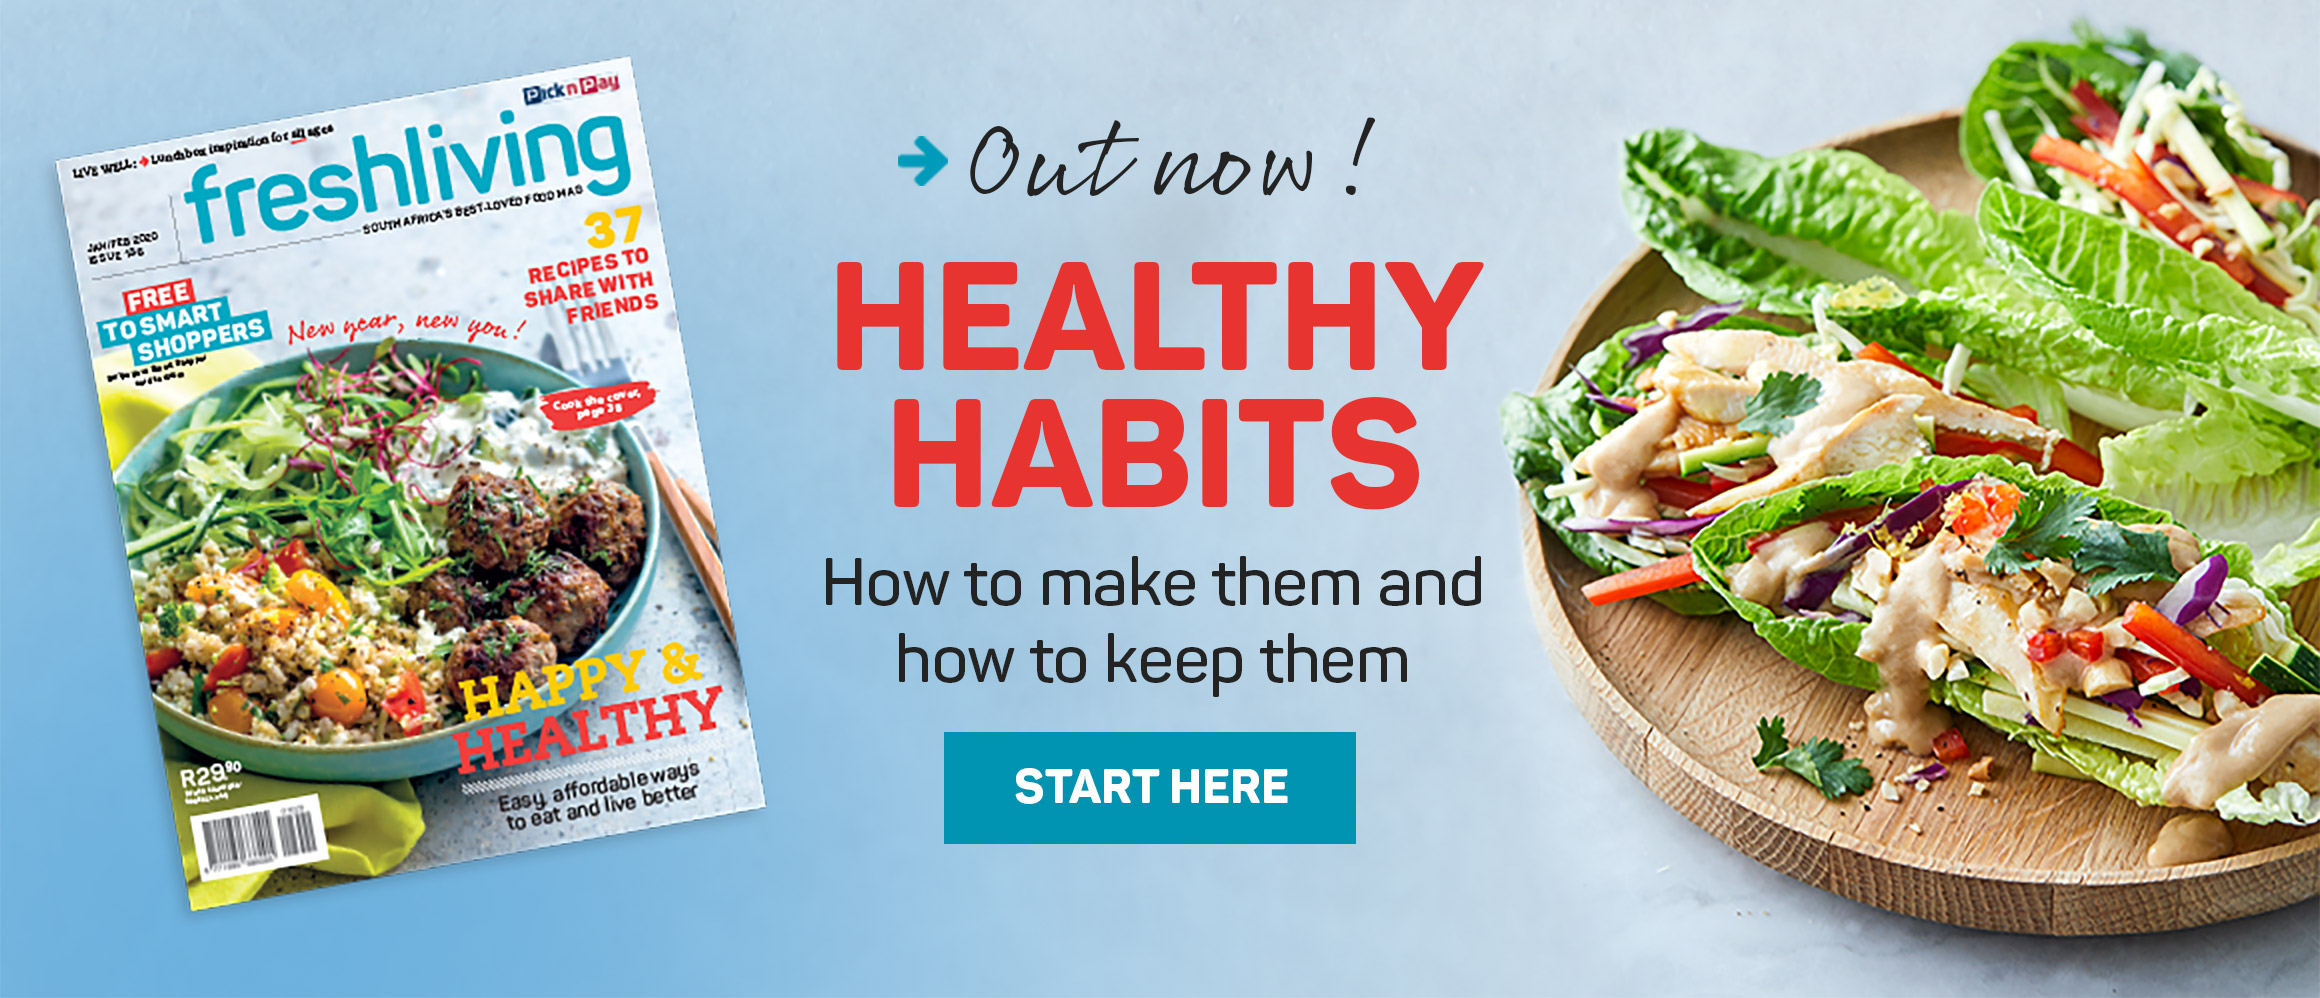 Out now! Healthy habits. How to make them and how to keep them.  Start here